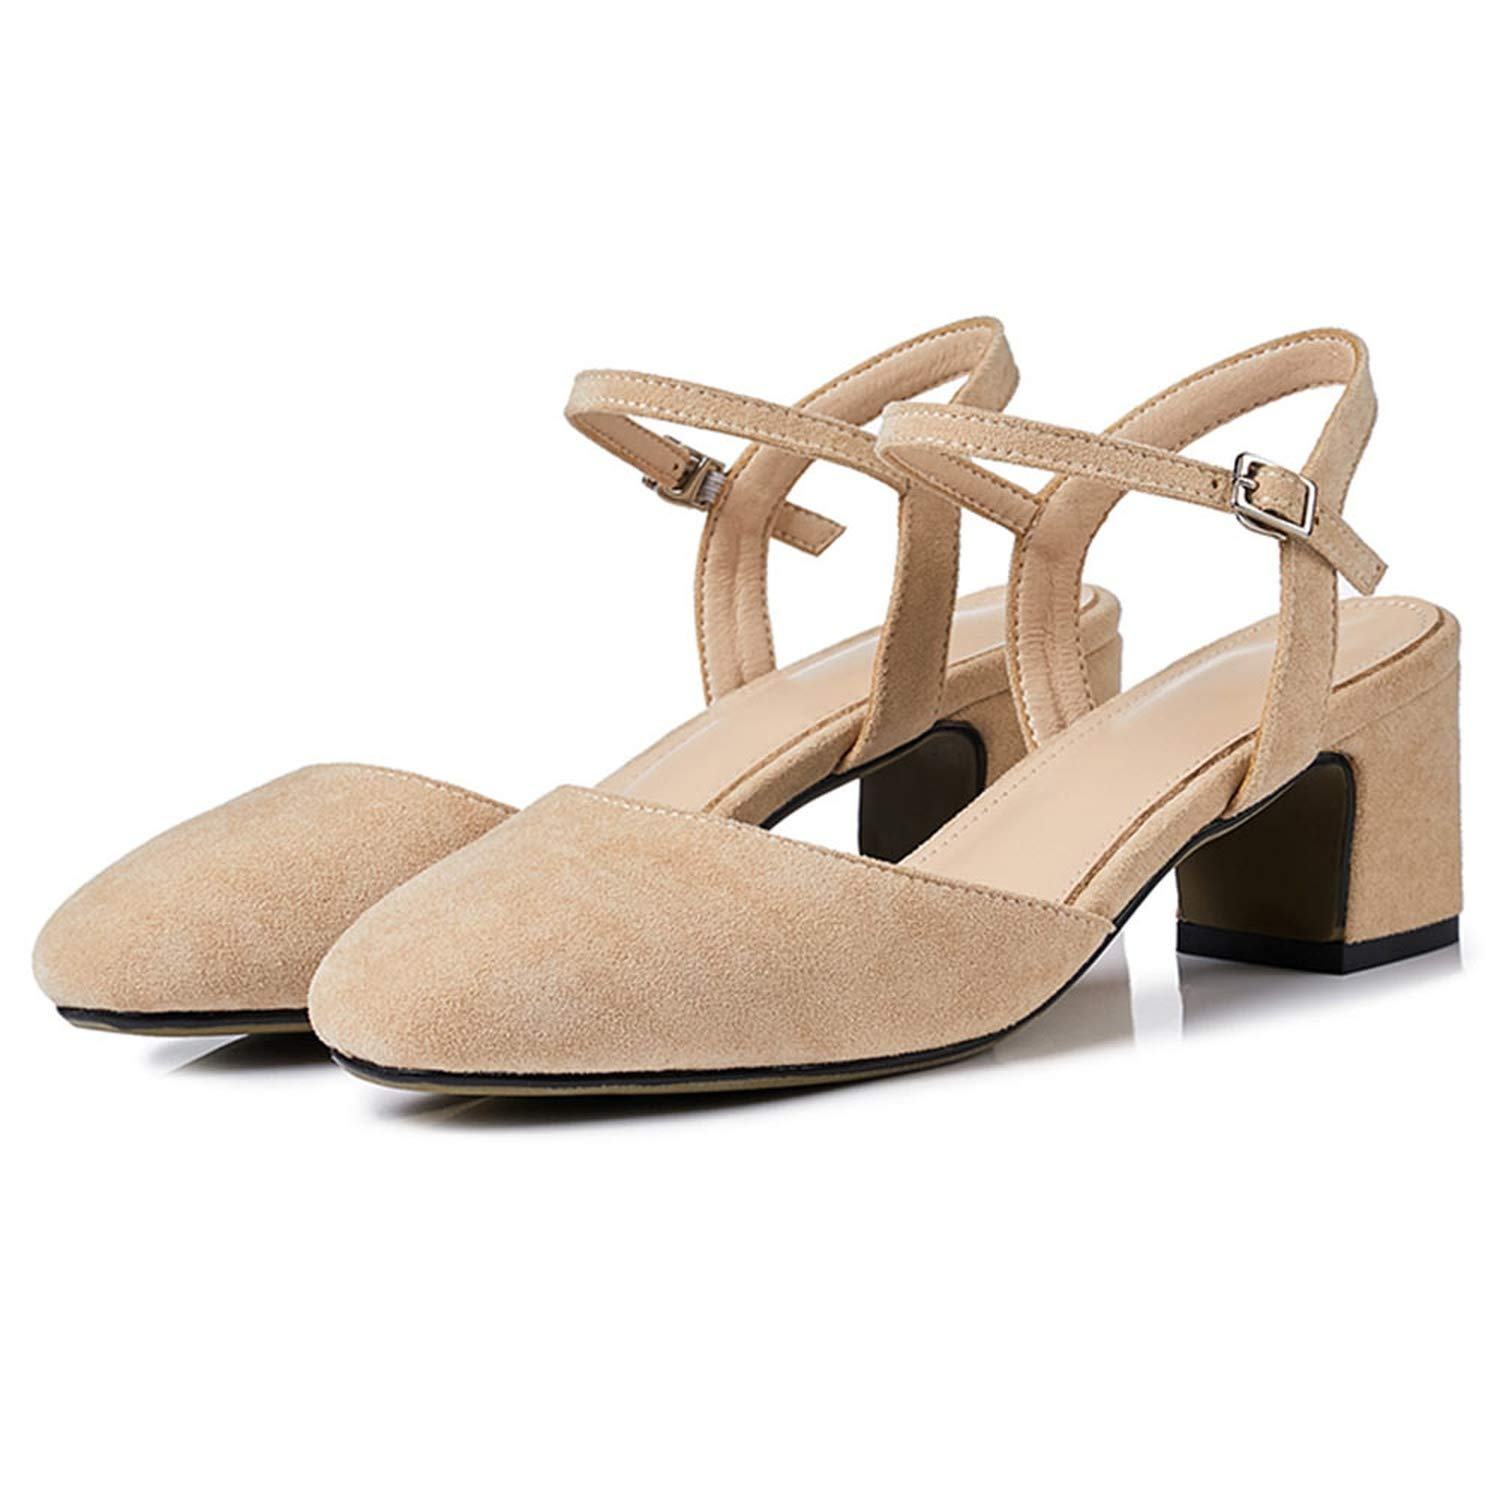 3-203 Apricot shoes Cover Square Toe Sexy Slingback Summer shoes for Women Sandal